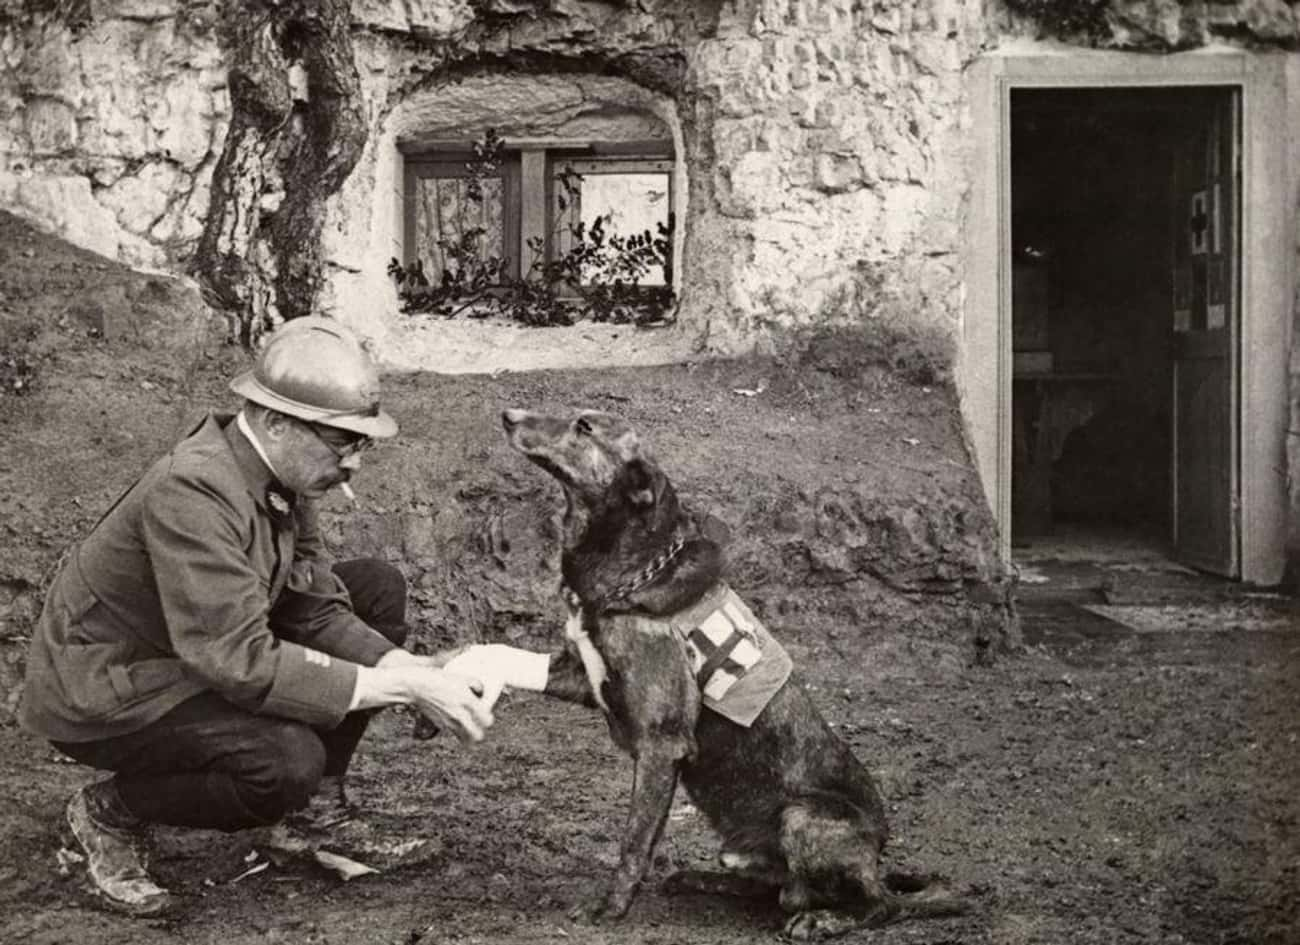 Lucas Dubois Assures His Comra is listed (or ranked) 4 on the list The 18 Proudest And Most Sophisticated History Dogs We Could Find On The Internet